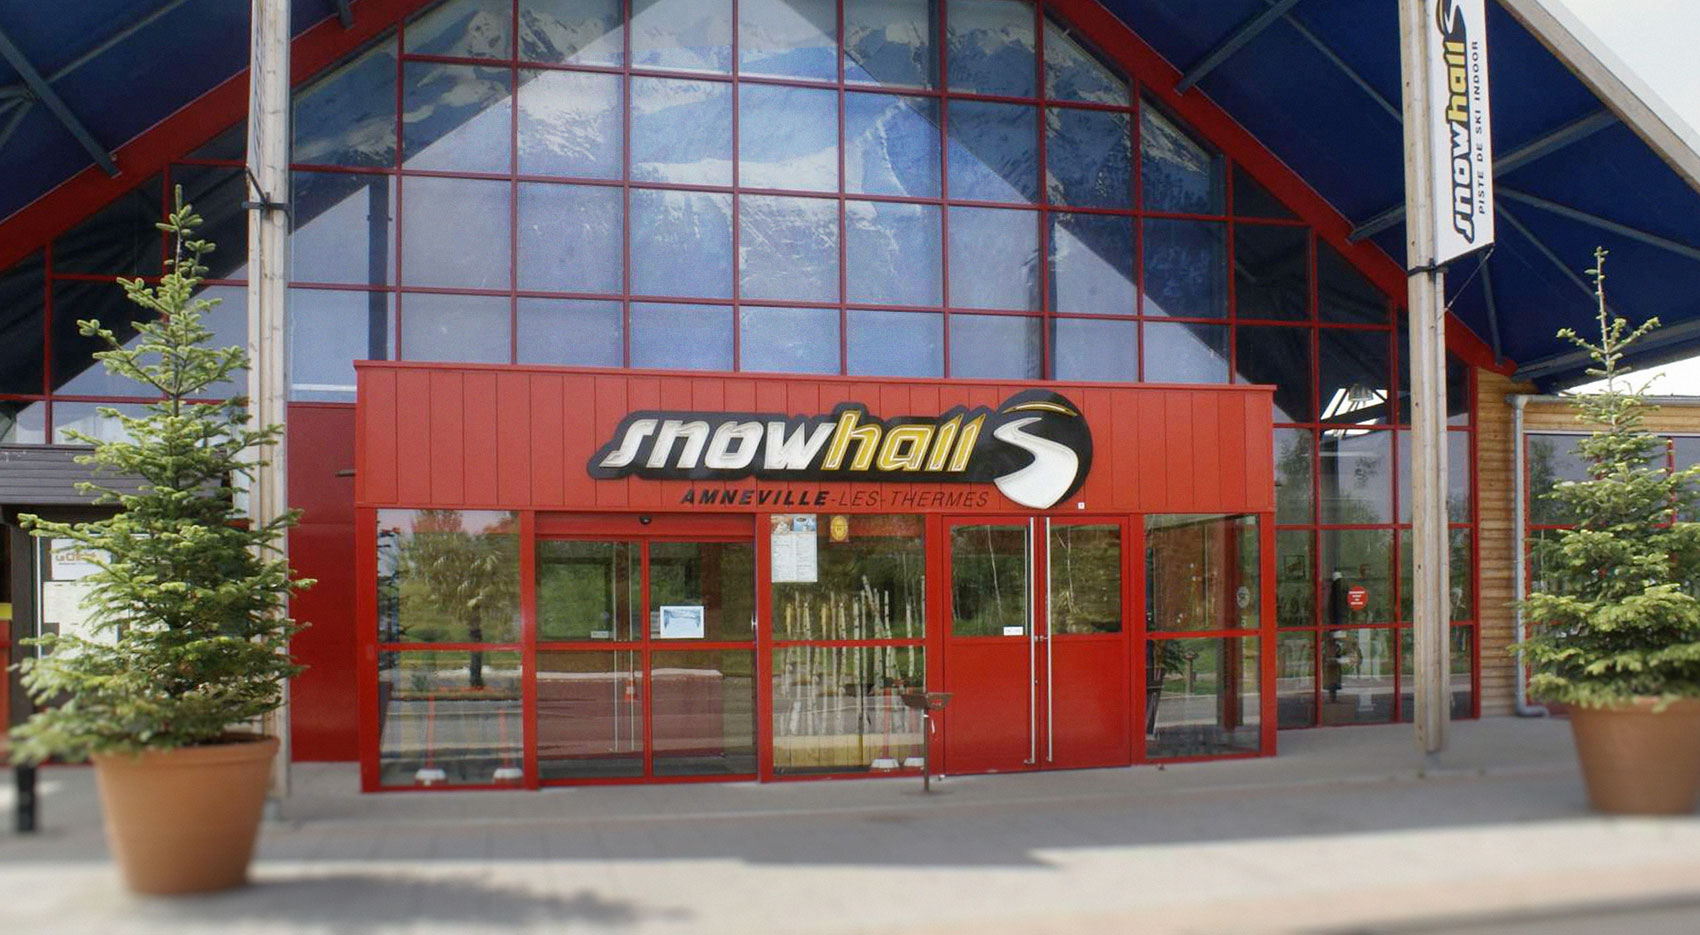 snowhall-2